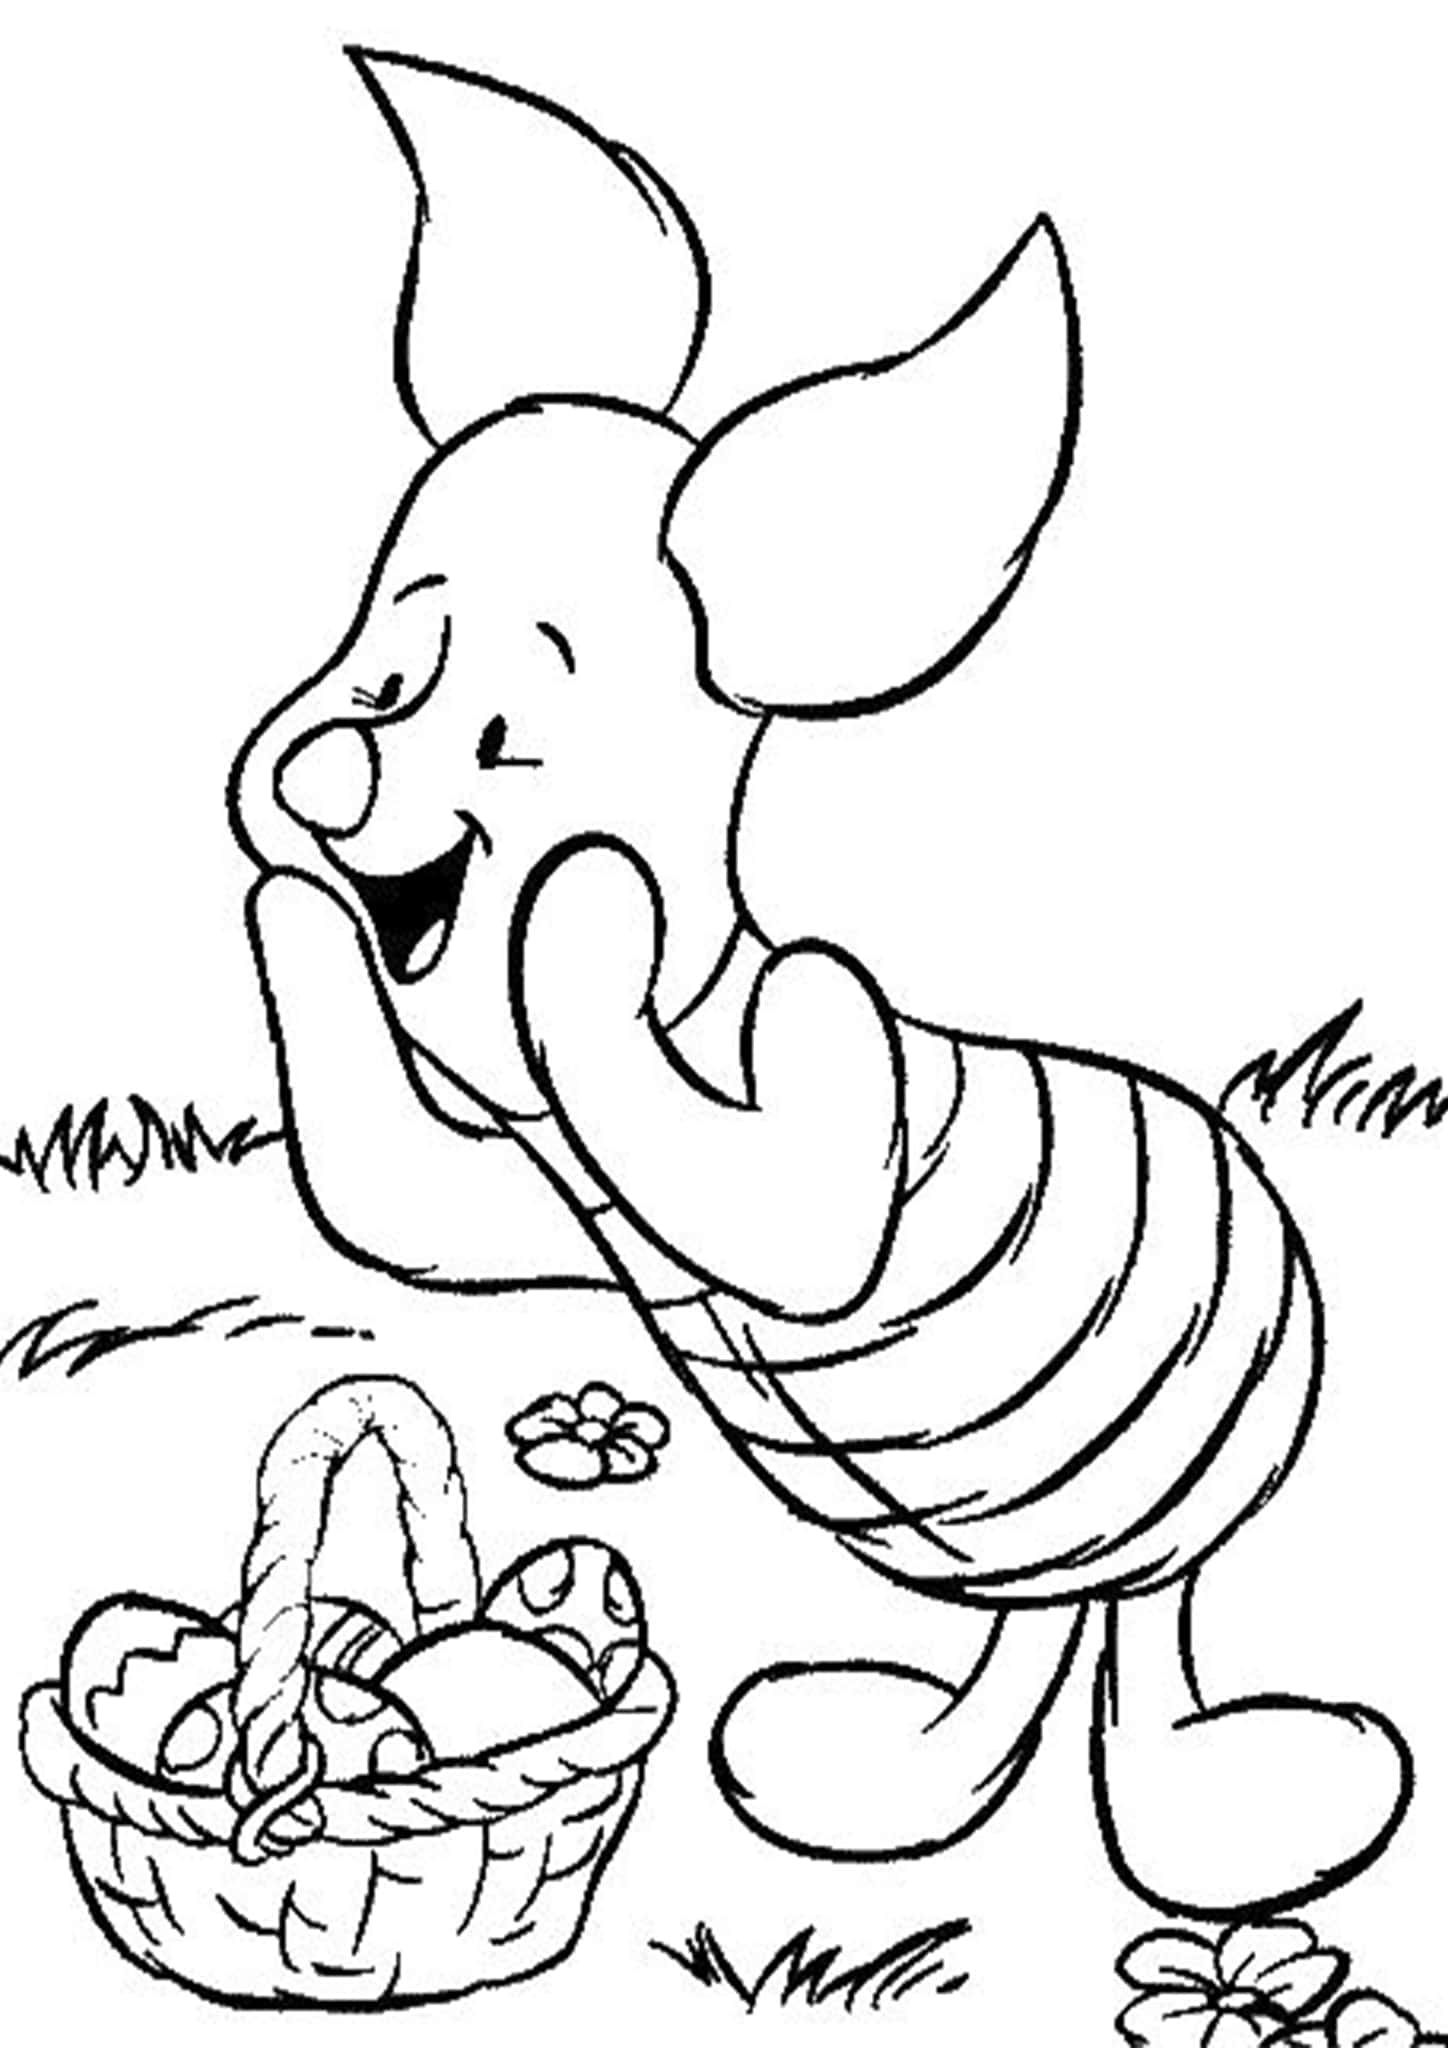 Free Easy To Print Winnie The Pooh Coloring Pages Easter Coloring Pages Easter Coloring Pictures Disney Coloring Pages